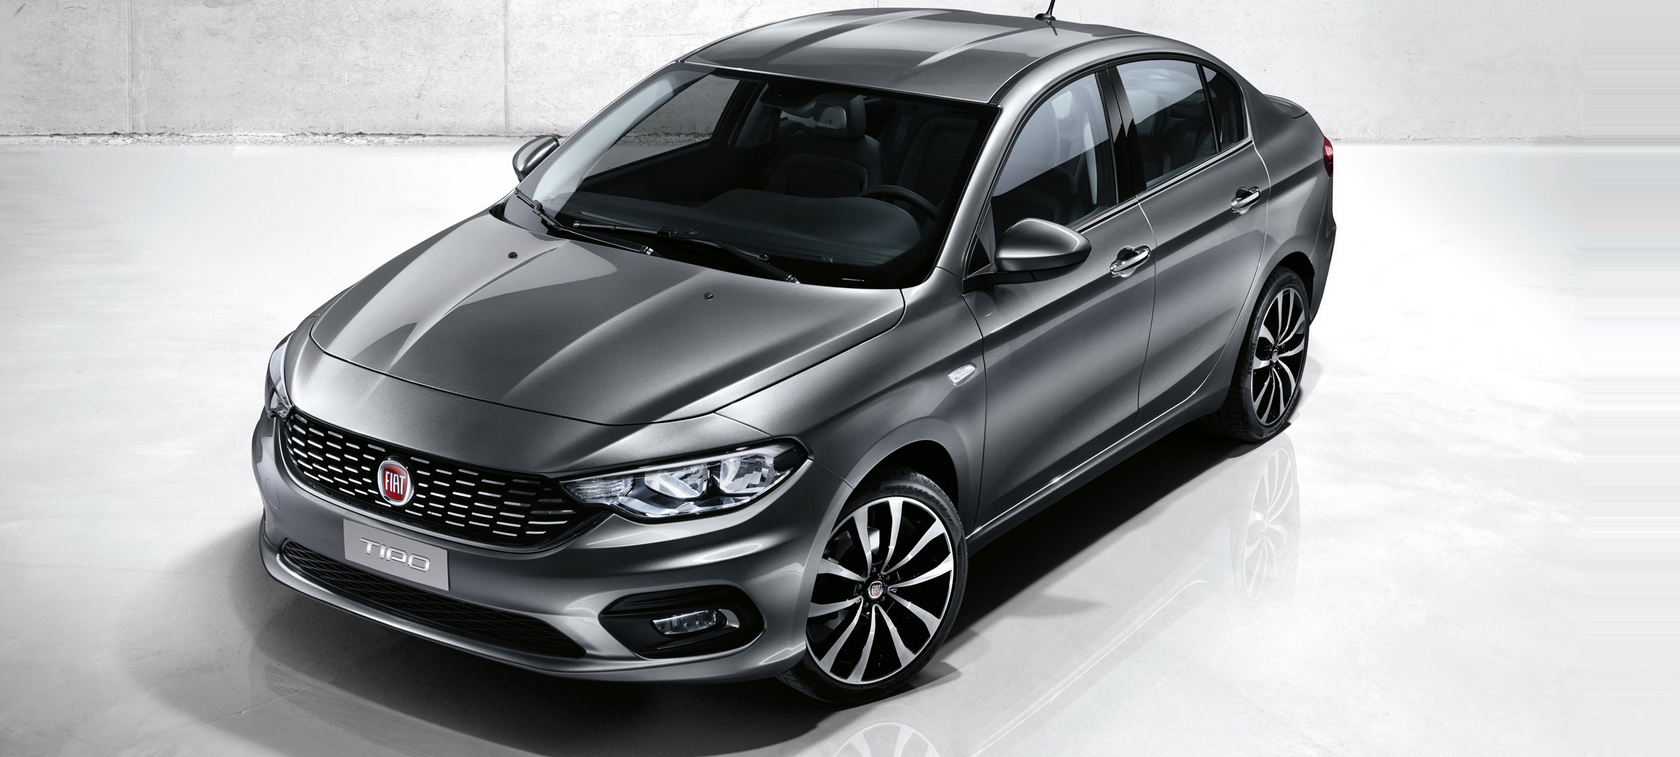 Fiat Tipo LPG - the top type